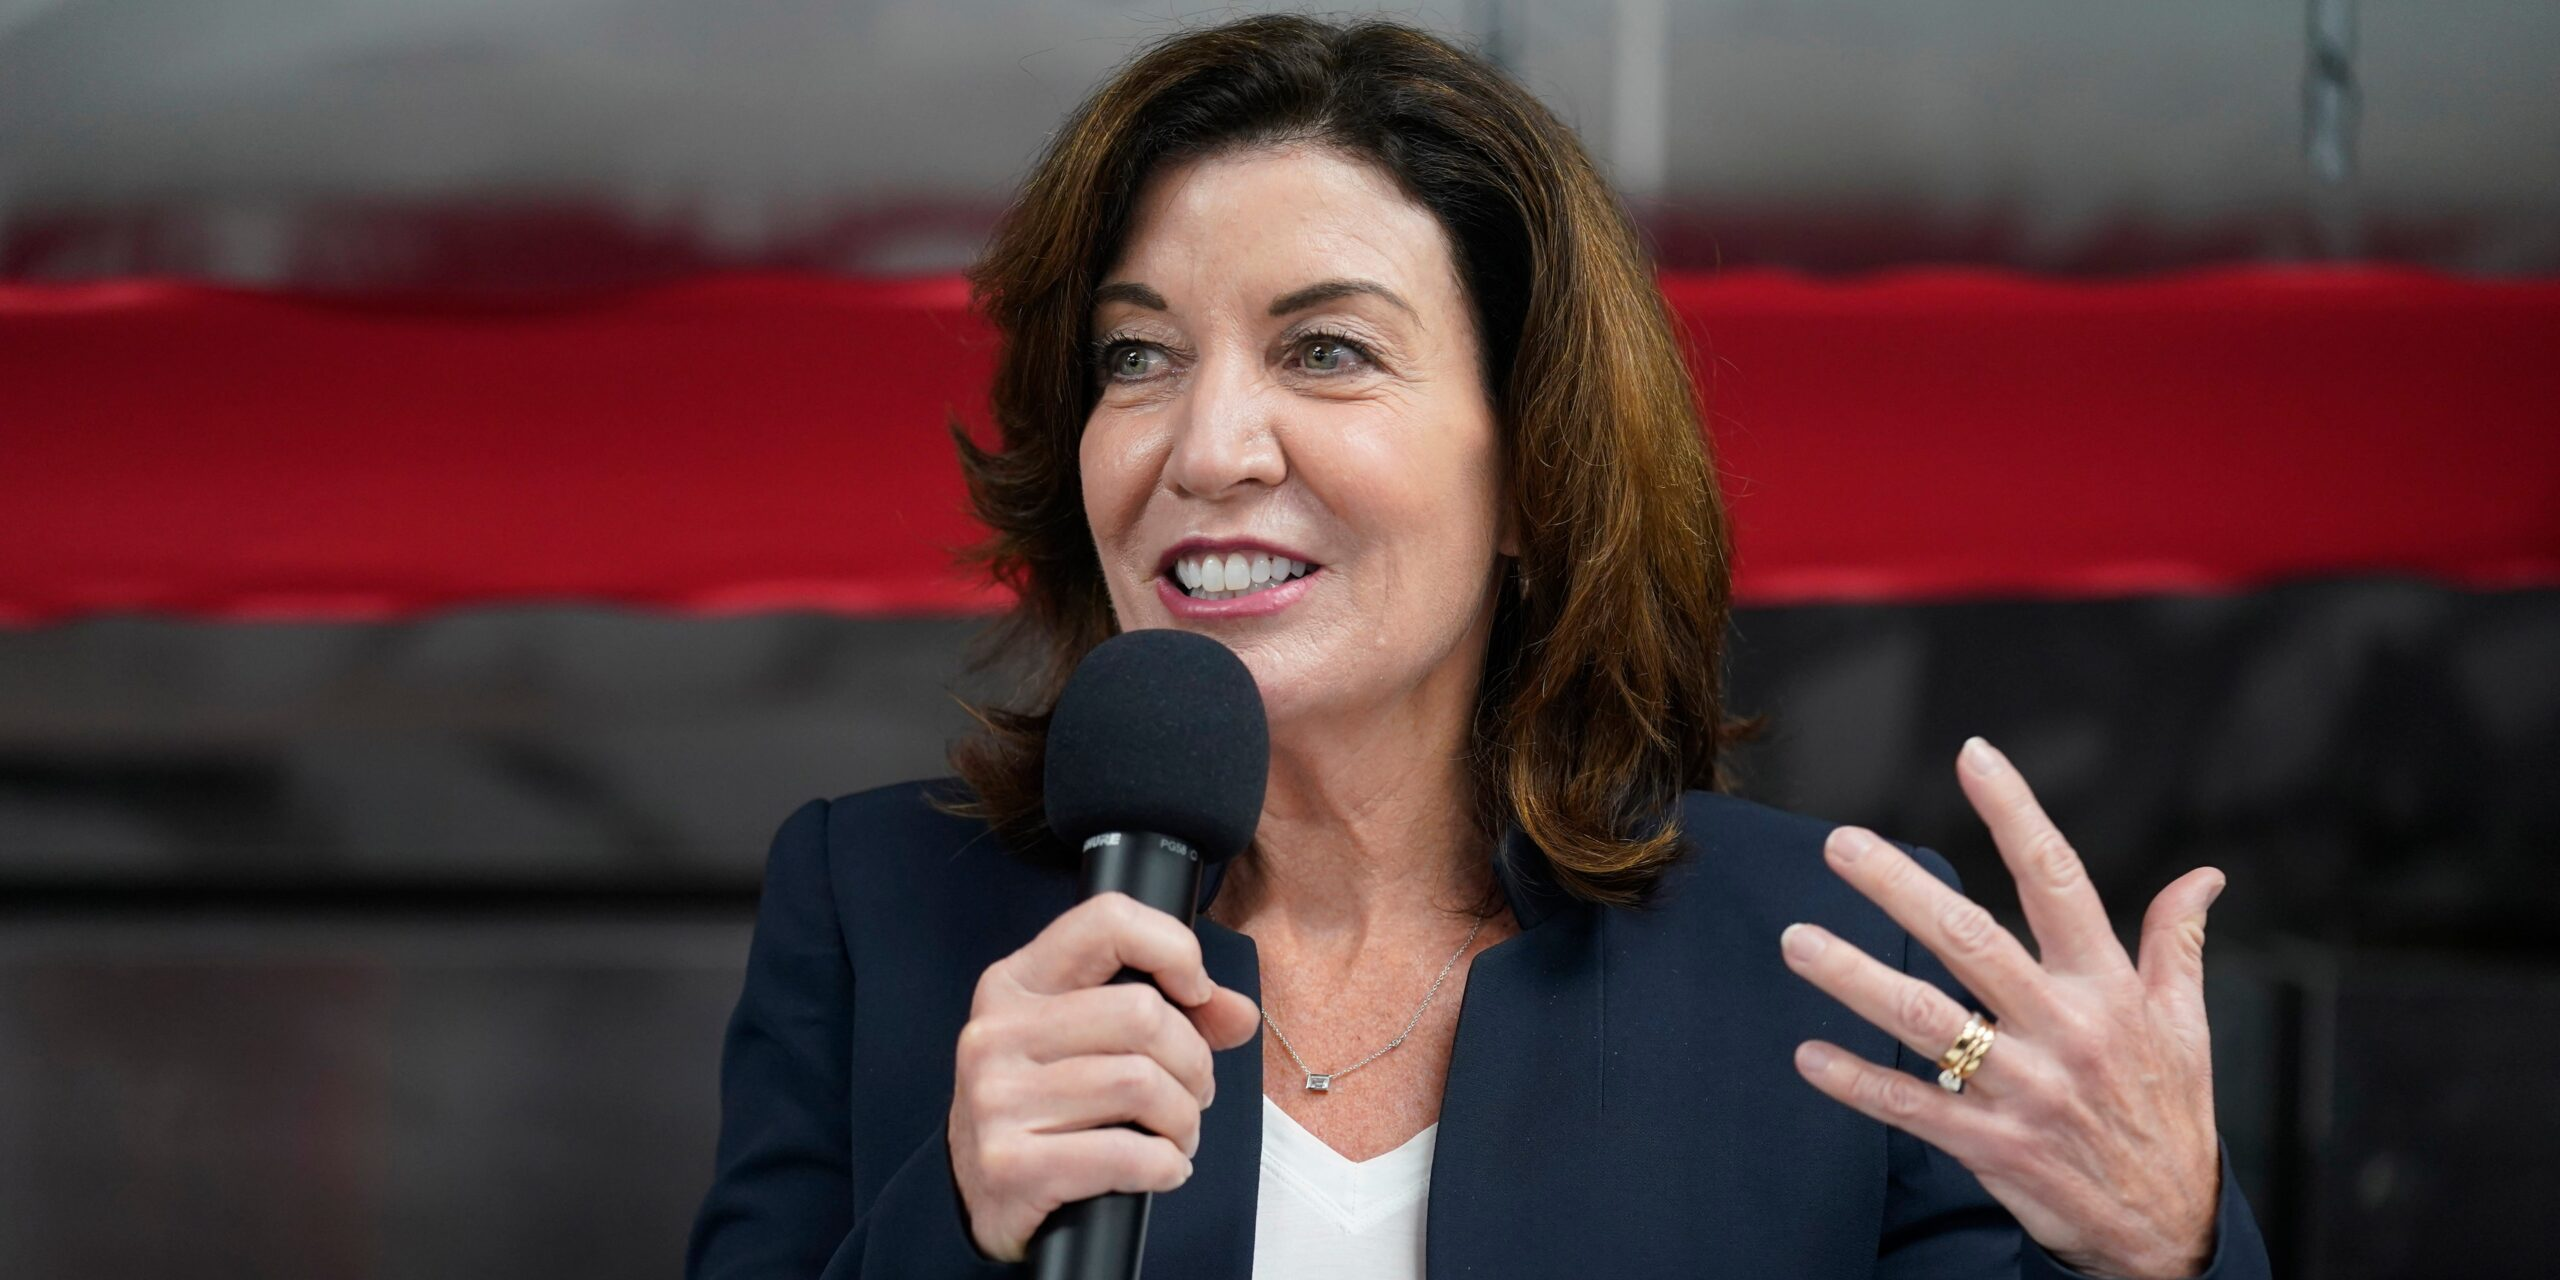 NY Gov. Kathy Hochul adds 12,000 more COVID-19 deaths after Cuomo accused of nursing home cover-up